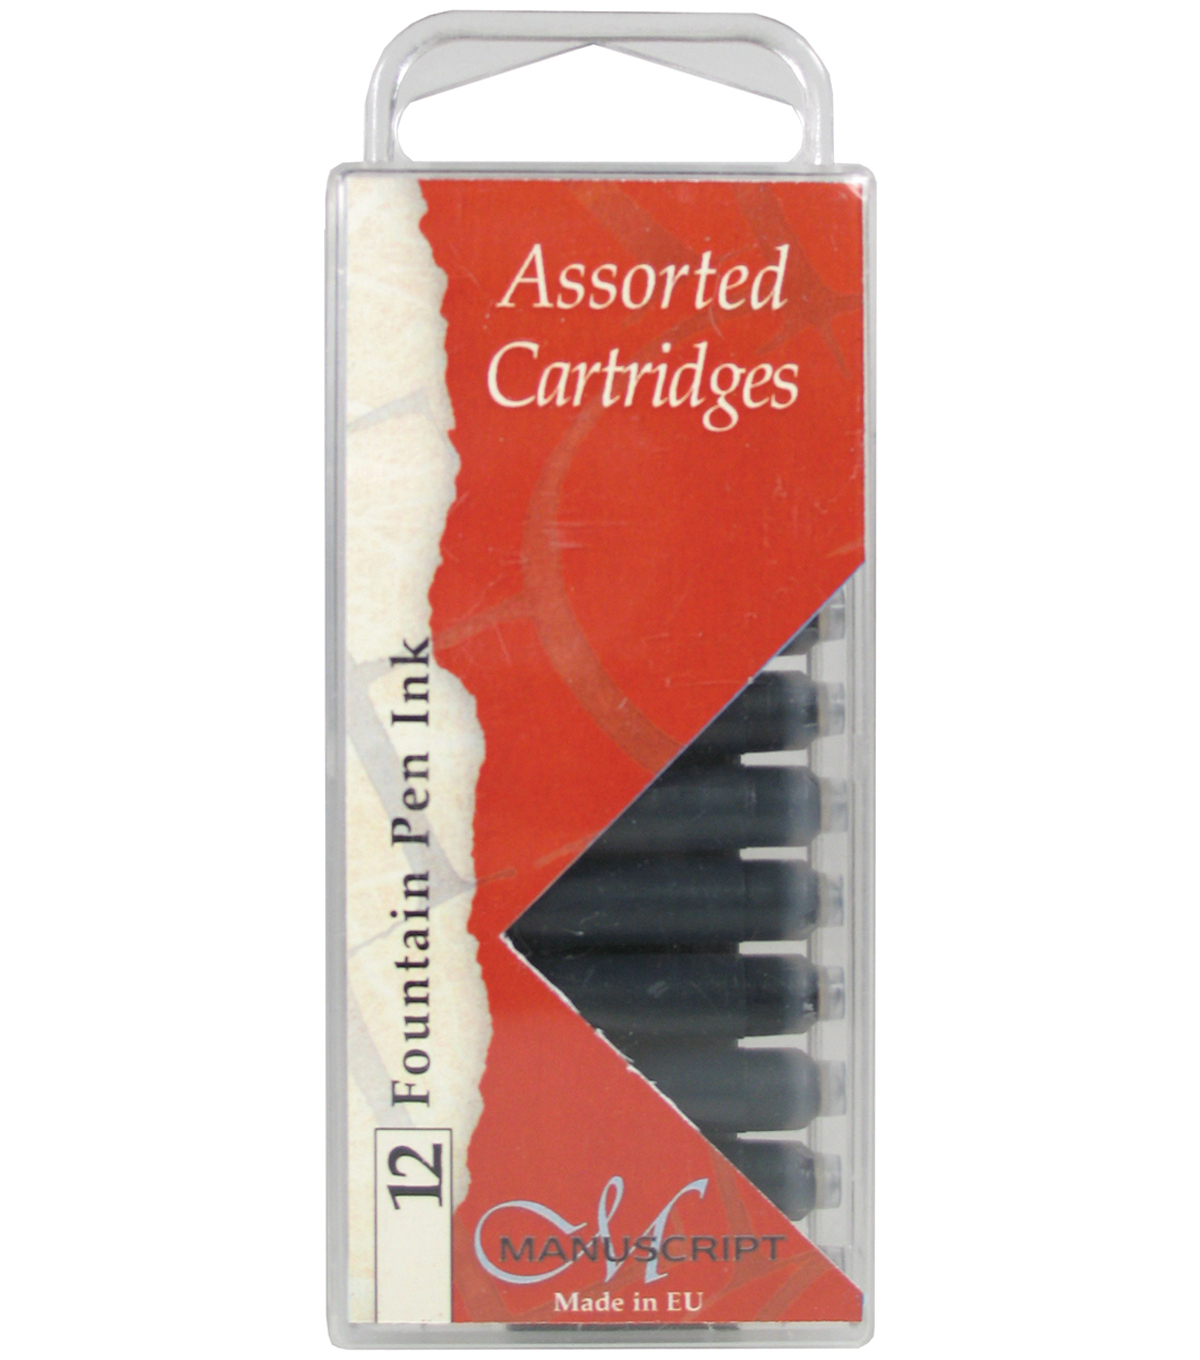 Manuscript Calligraphy Cartridge 12/Pkg-Black, Blue, Sepia